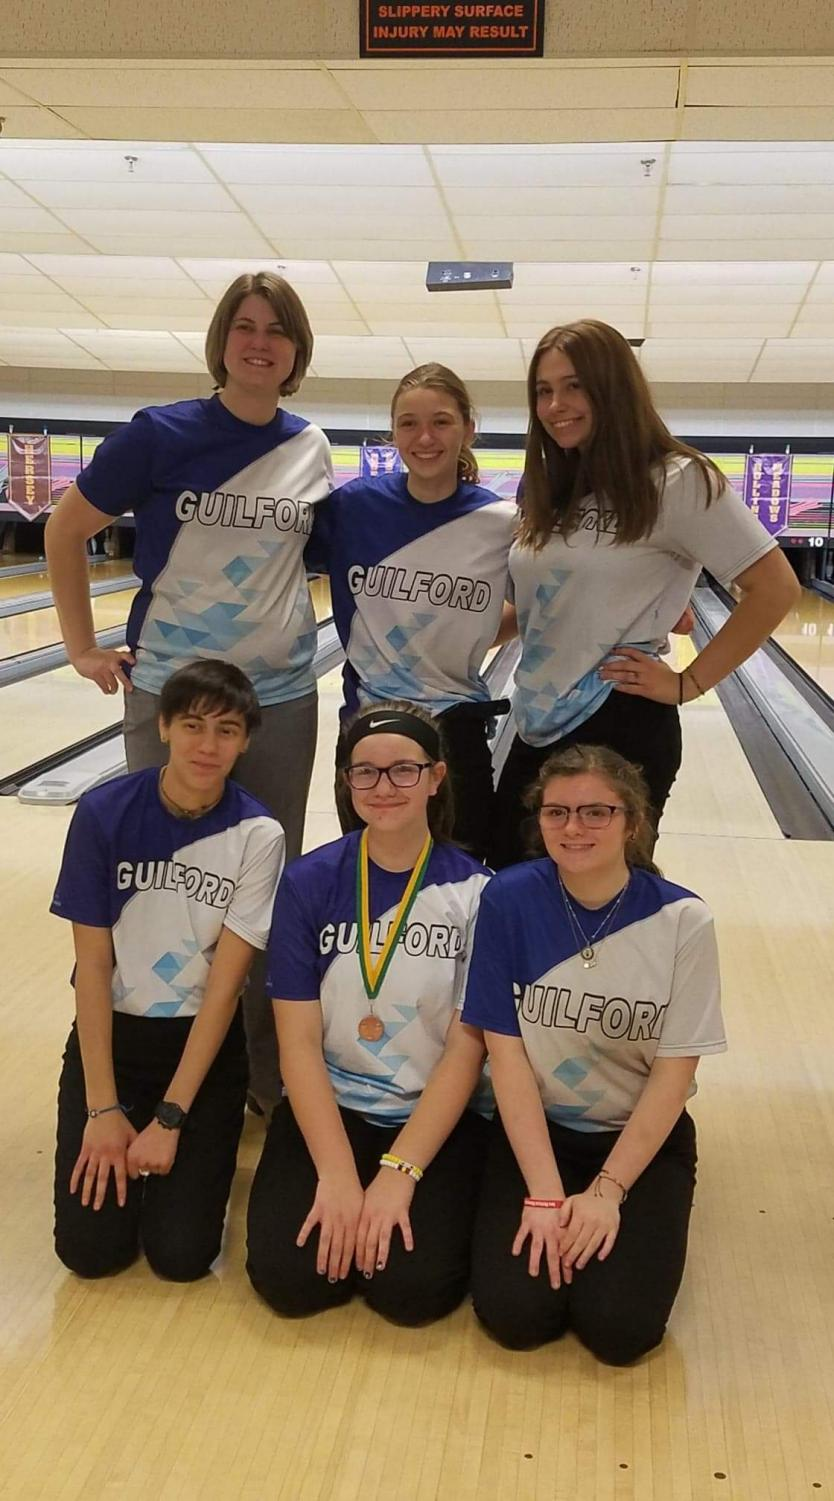 The girls bowling team performed well in Arlington heights with LeAnn Severson (9) finishing 6th individually